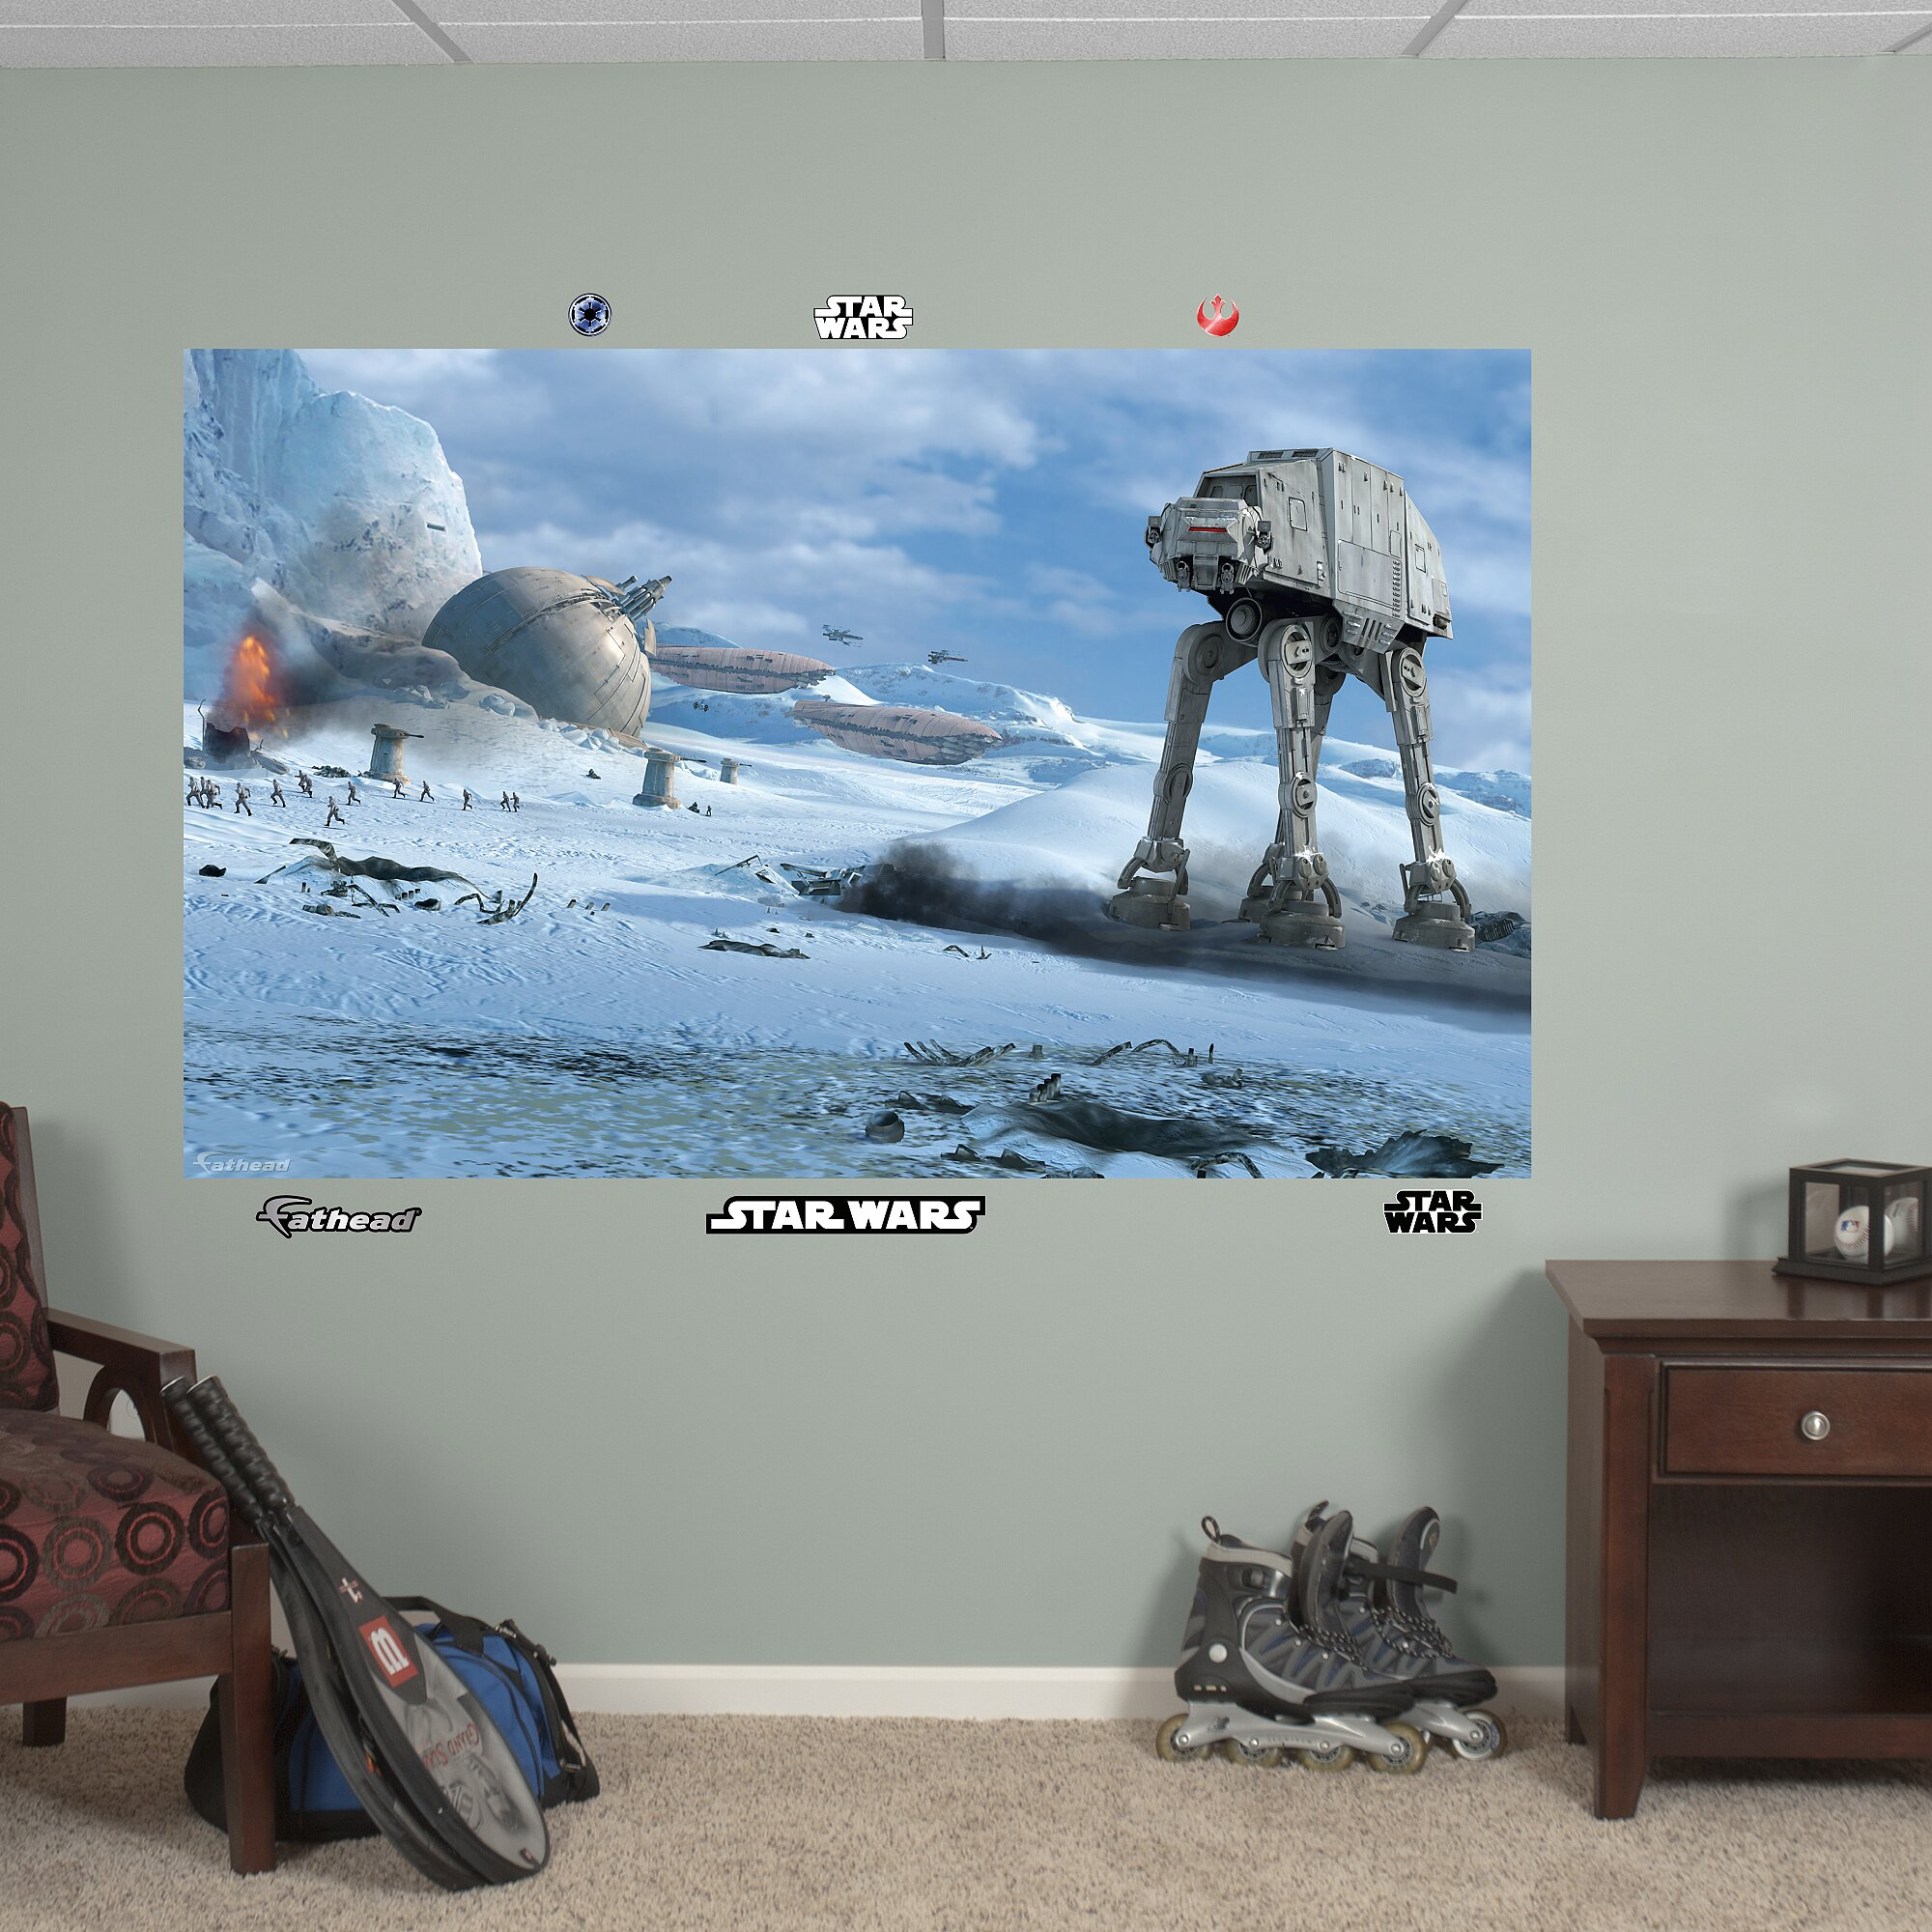 Fathead star wars at at battle wall mural reviews for Mural star wars